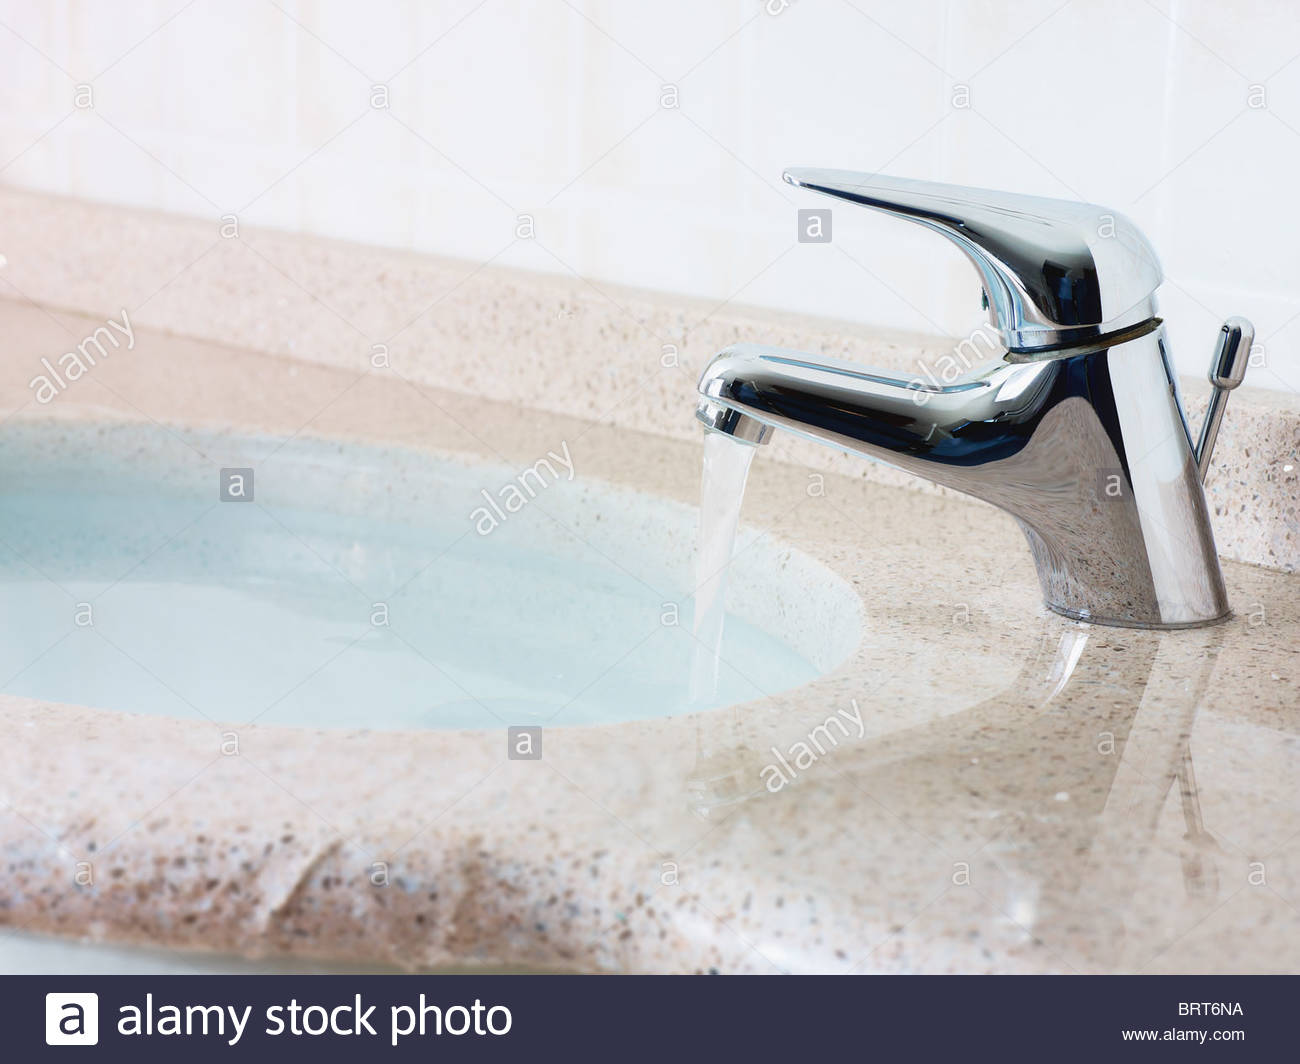 water overflowing from washbasin. Horizontal format, no people, copy space - Stock Image